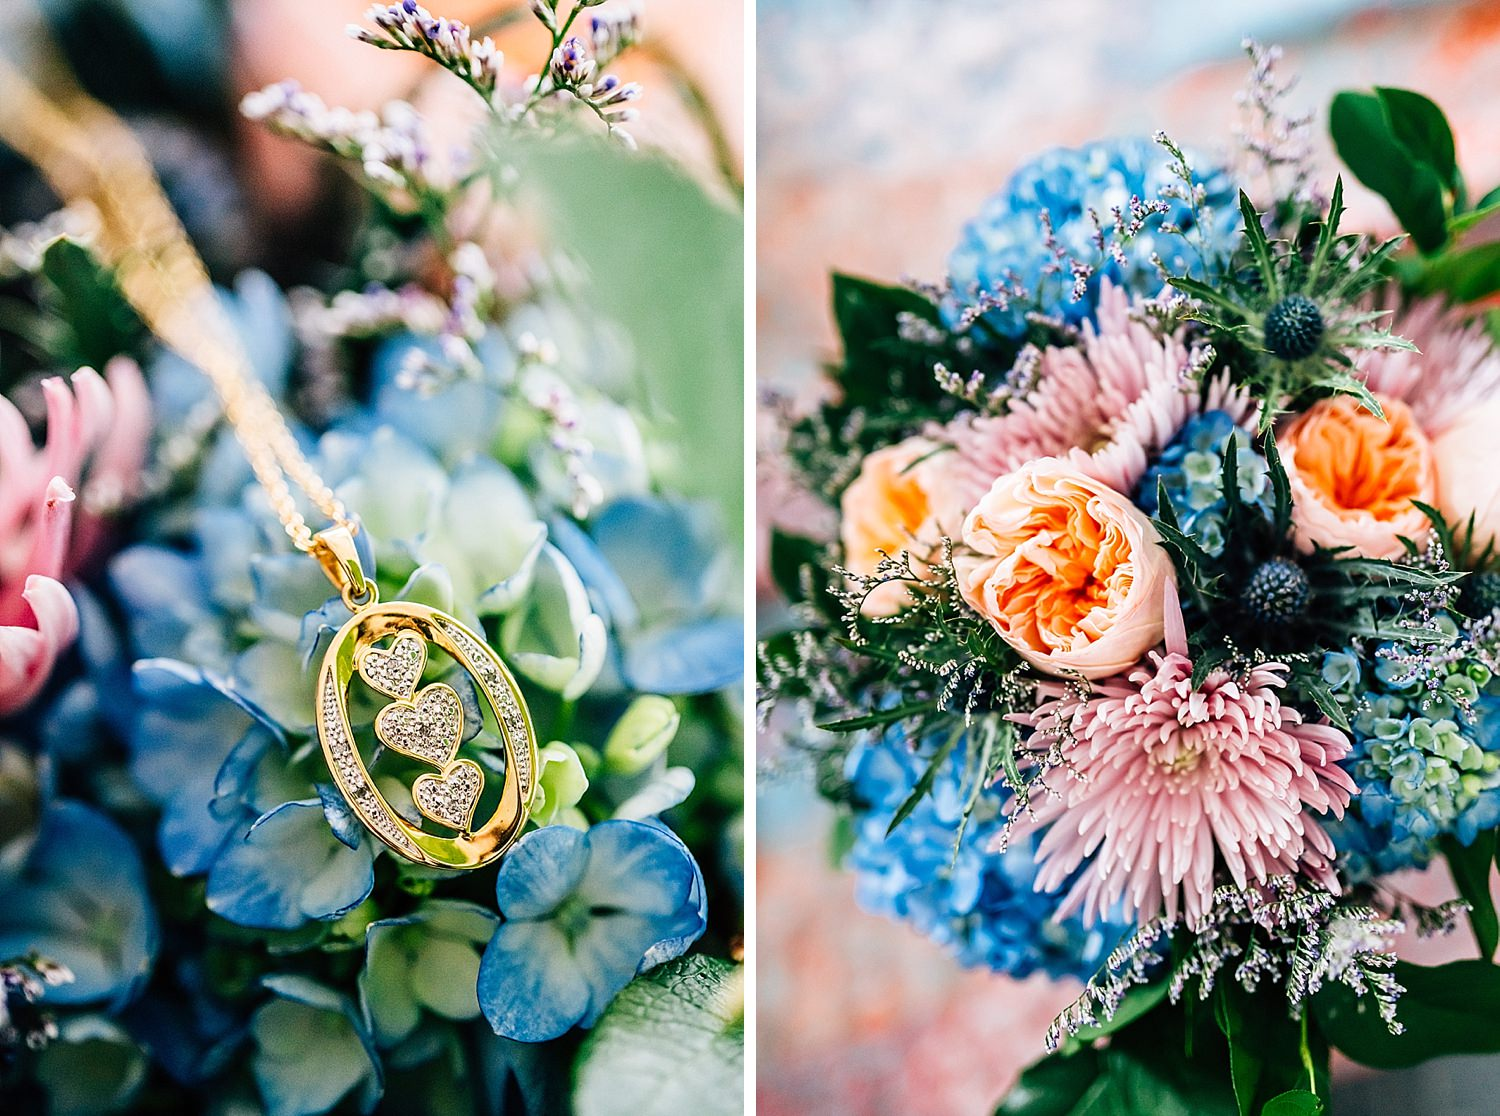 jewelry shown on flowers for wedding in church in delaware ohio